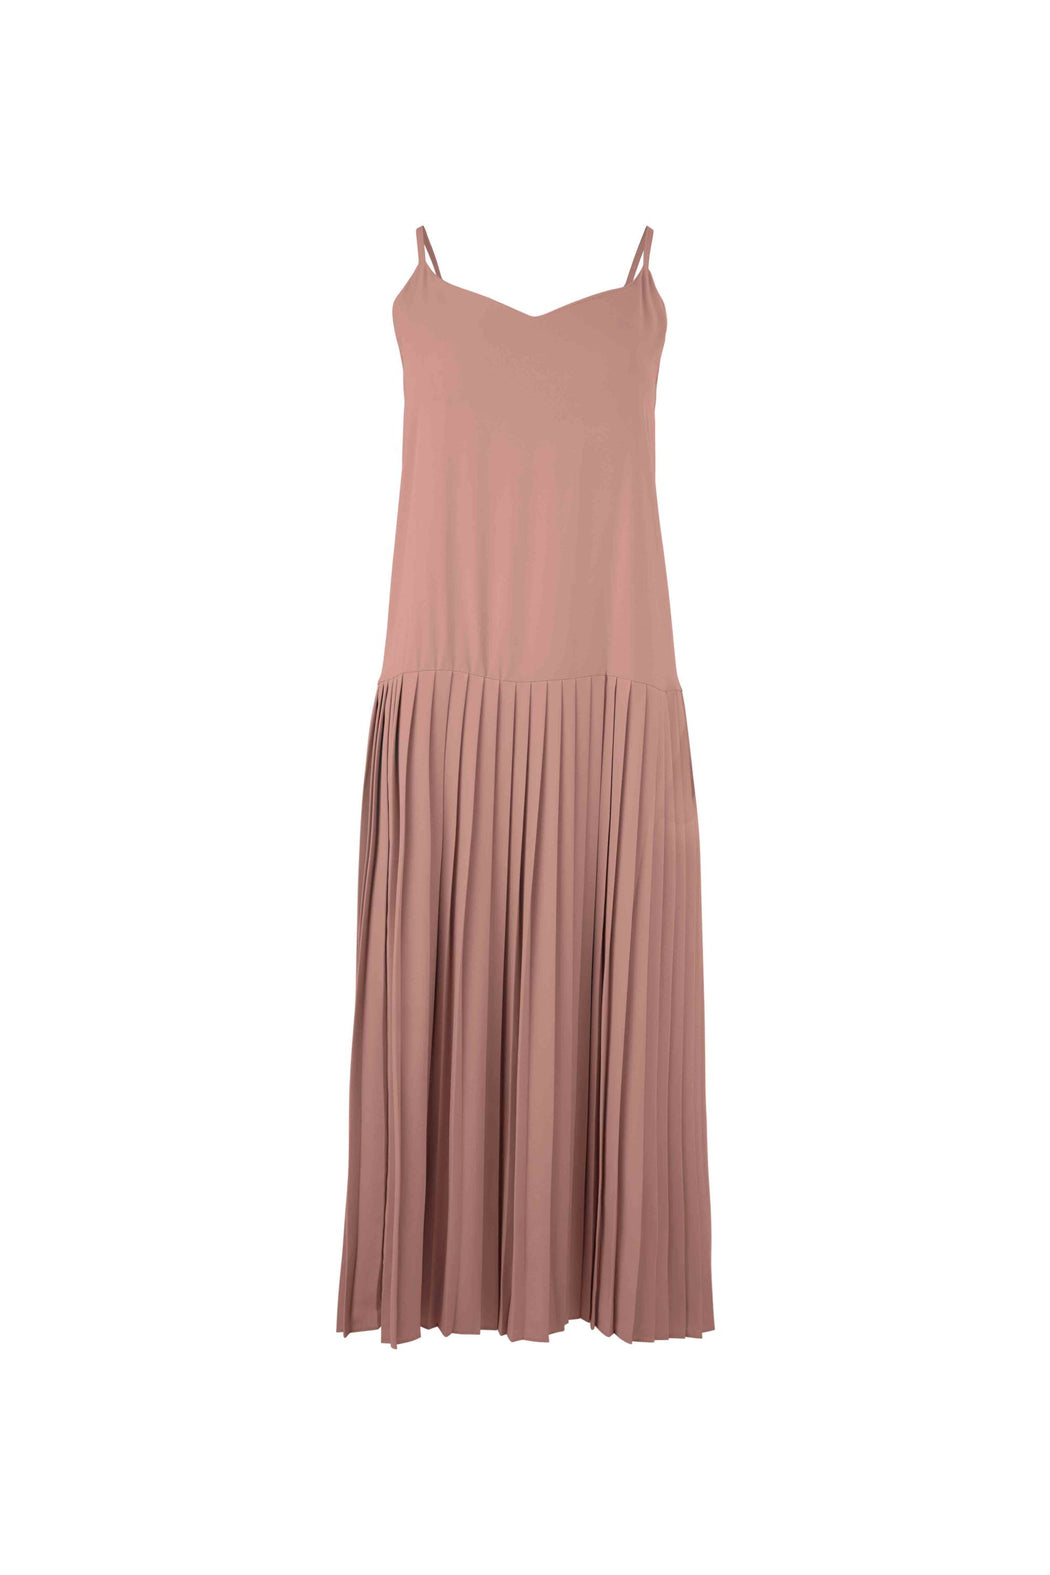 Trelise Cooper Pleated Little Lies Dress | Shop at Wallace and Gibbs